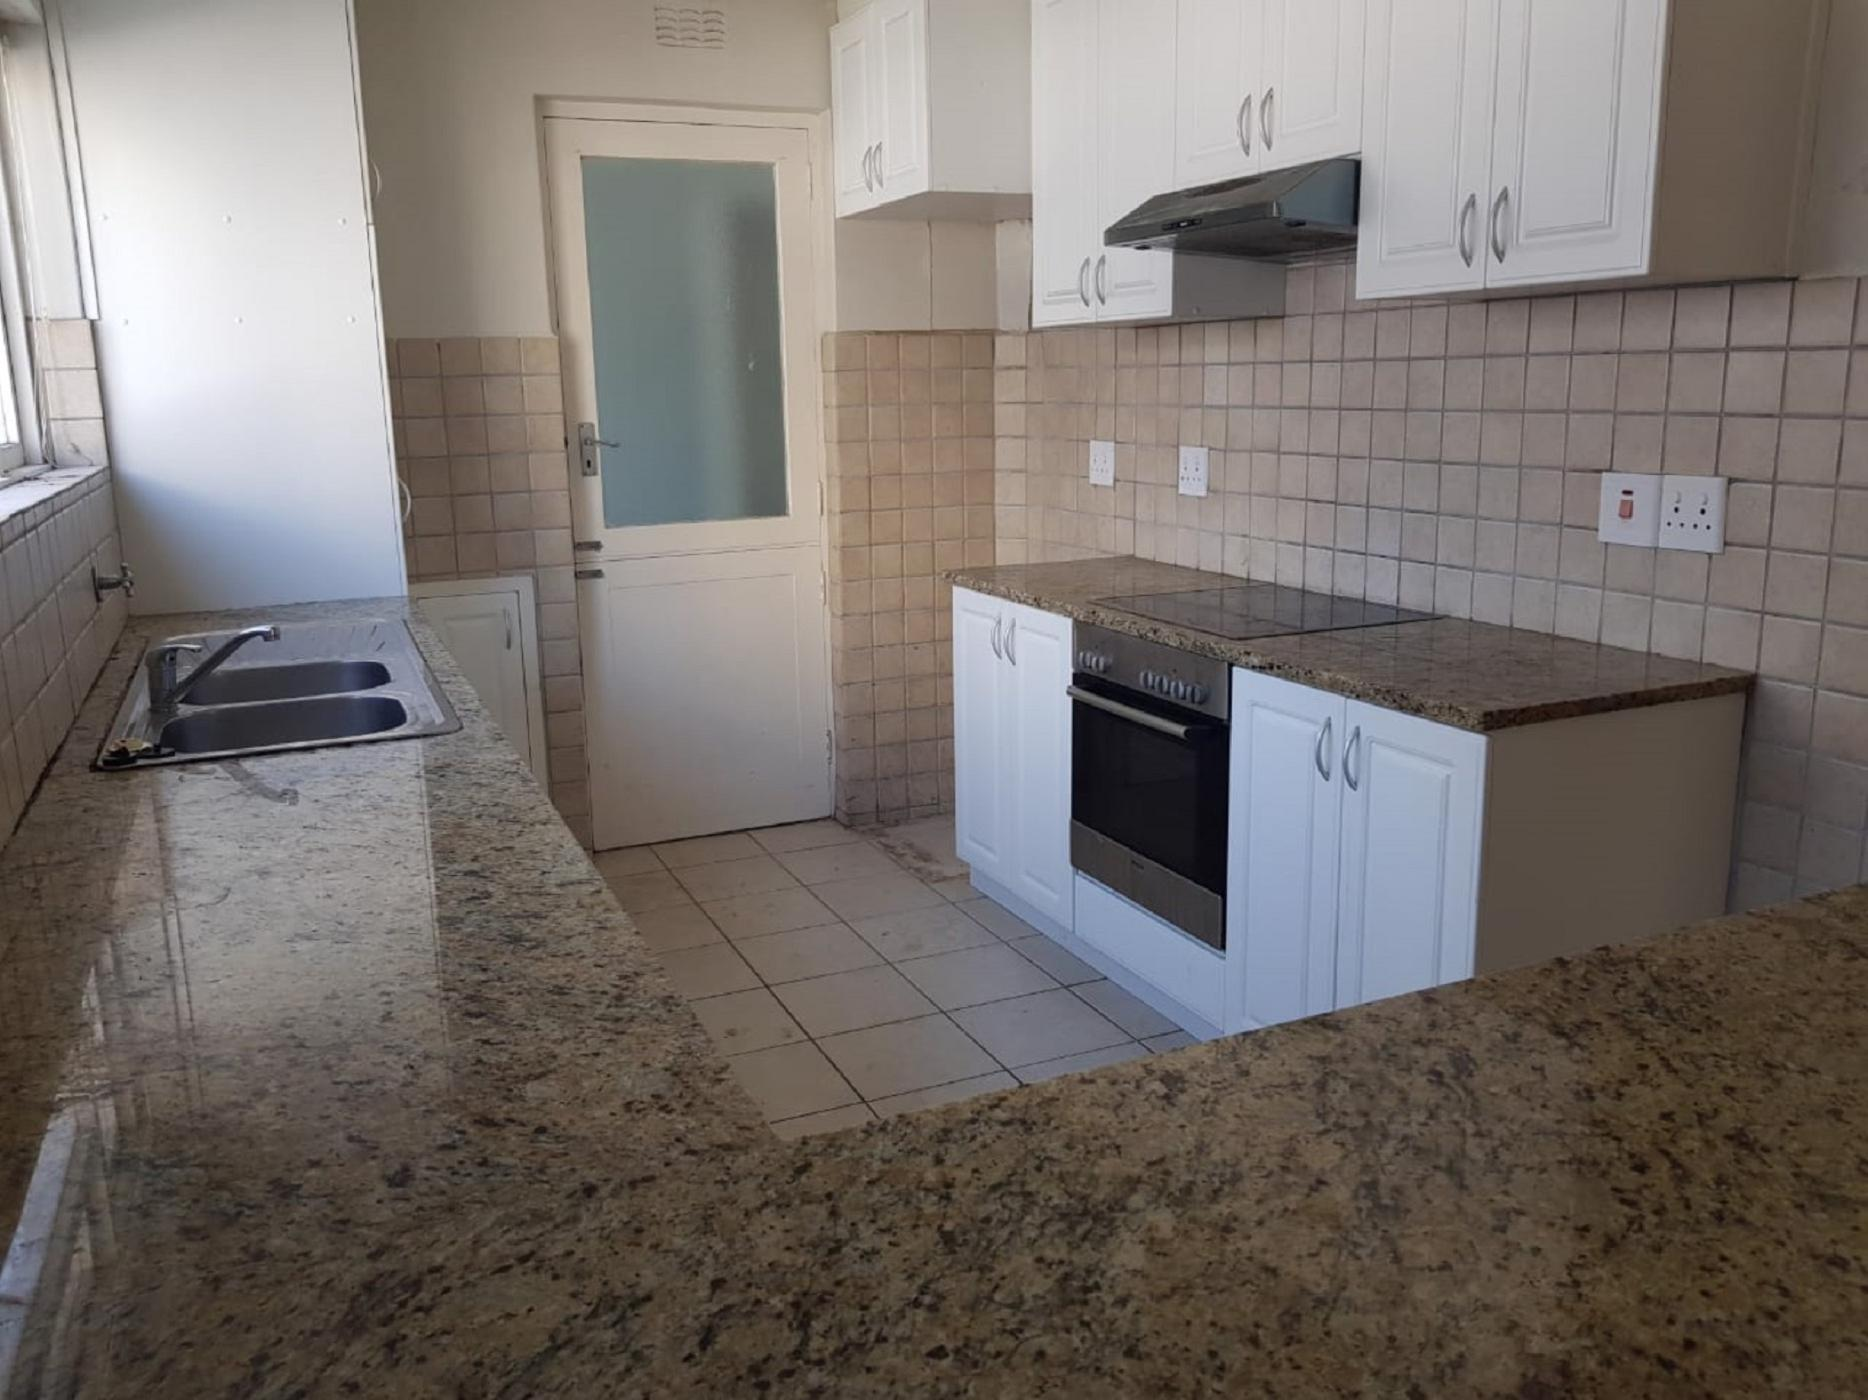 https://listing.pamgolding.co.za/images/properties/201902/1275921/H/1275921_H_16.jpg